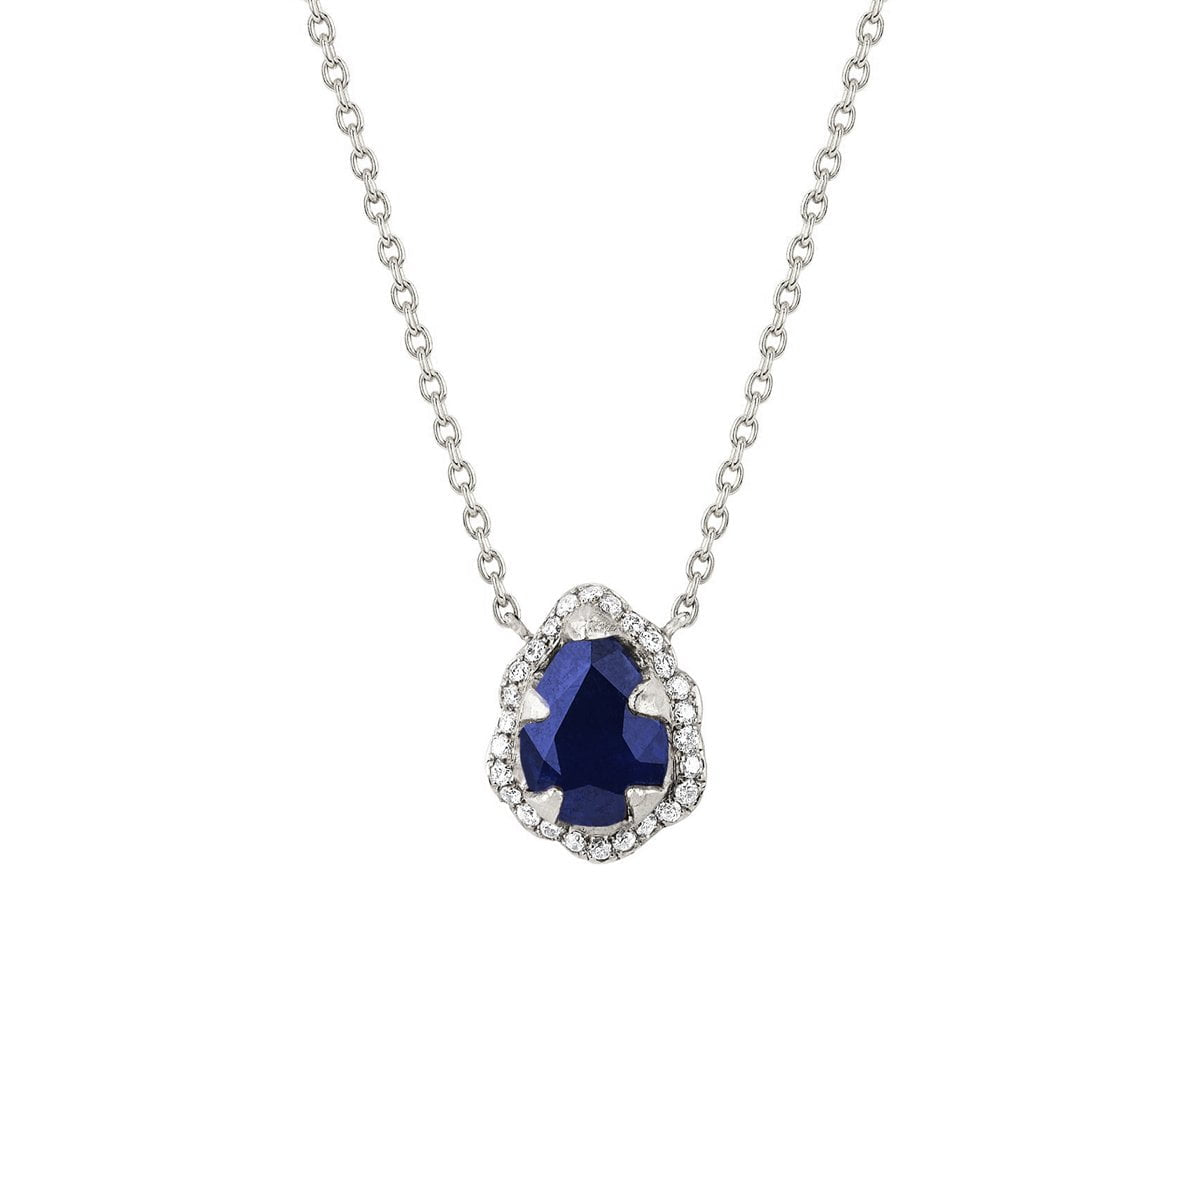 Micro Queen Water Drop Blue Sapphire Necklace with Pavé Diamond Halo